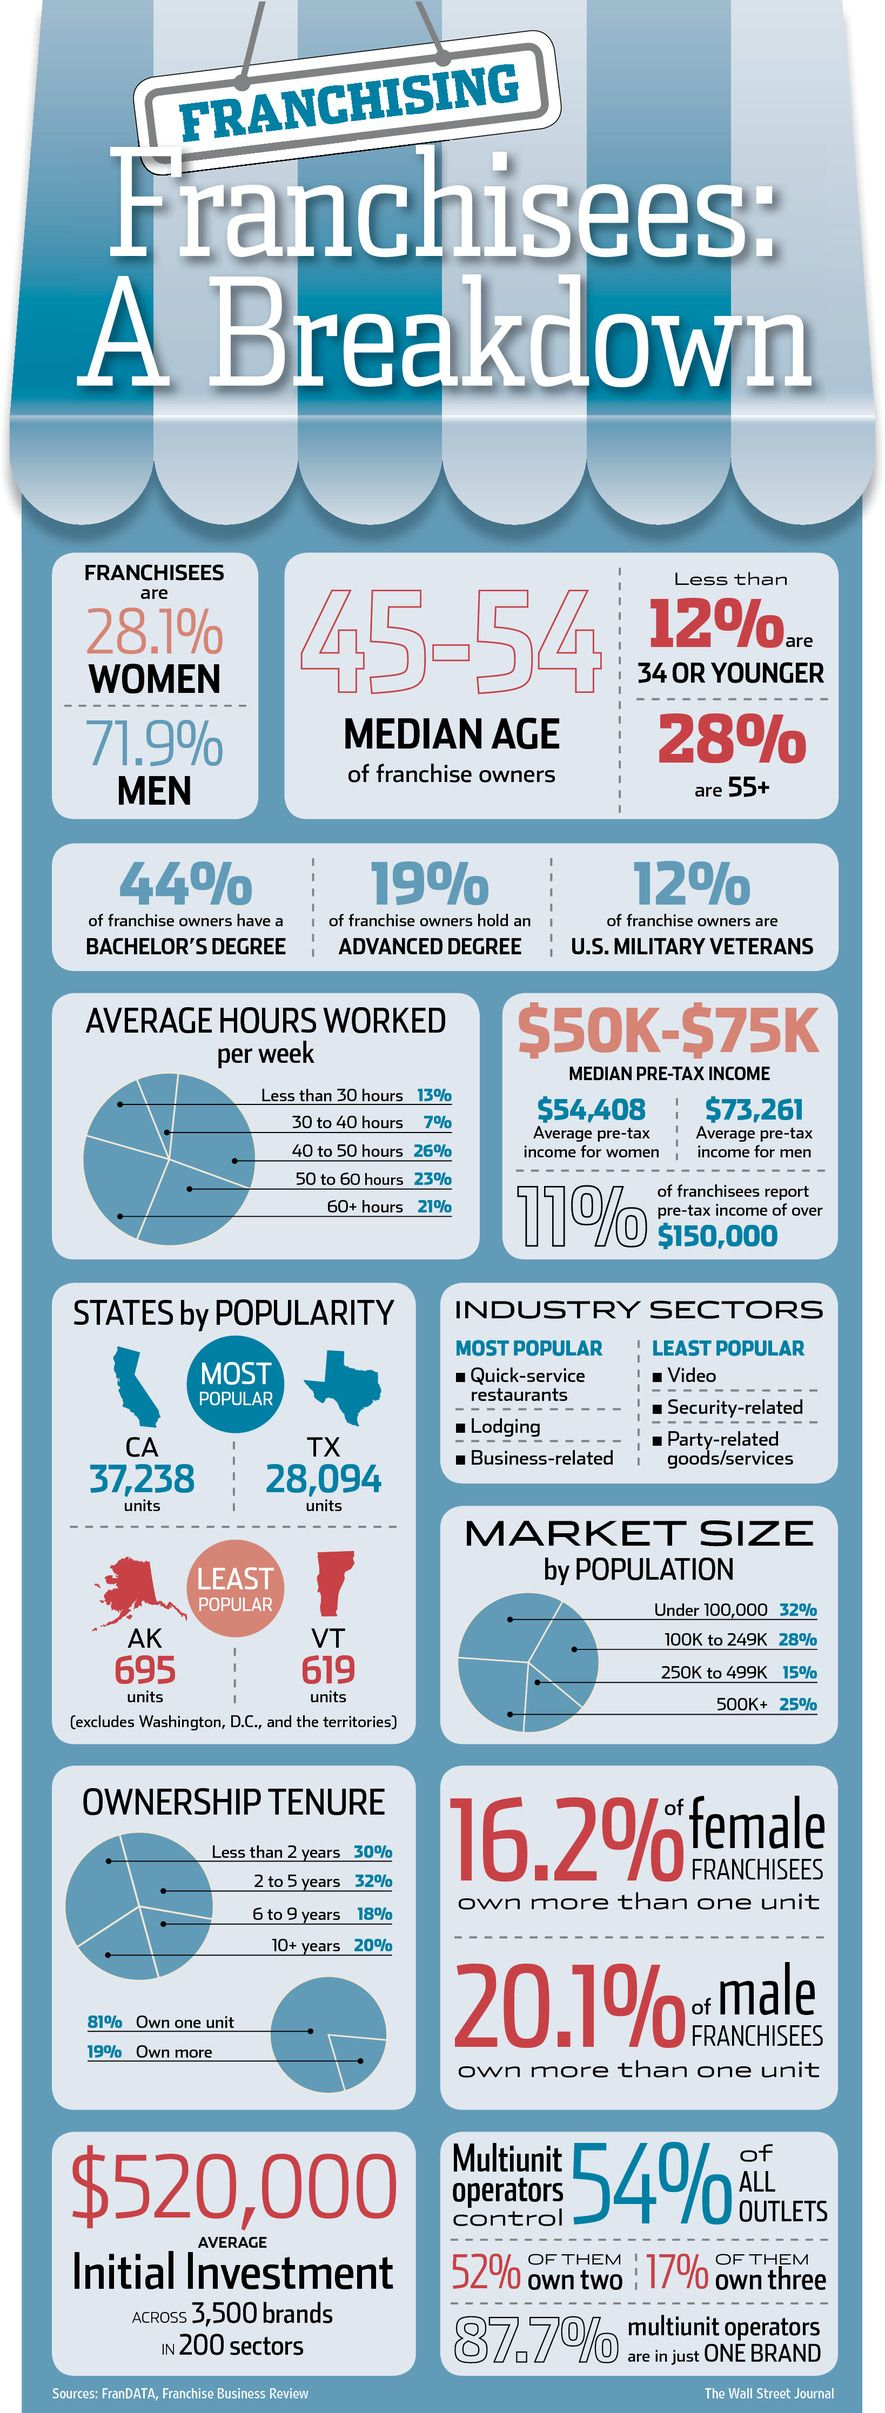 Franchising infographic from the Wall Street Journal, FranDATA, Franchise Business Review #franchises #franchising